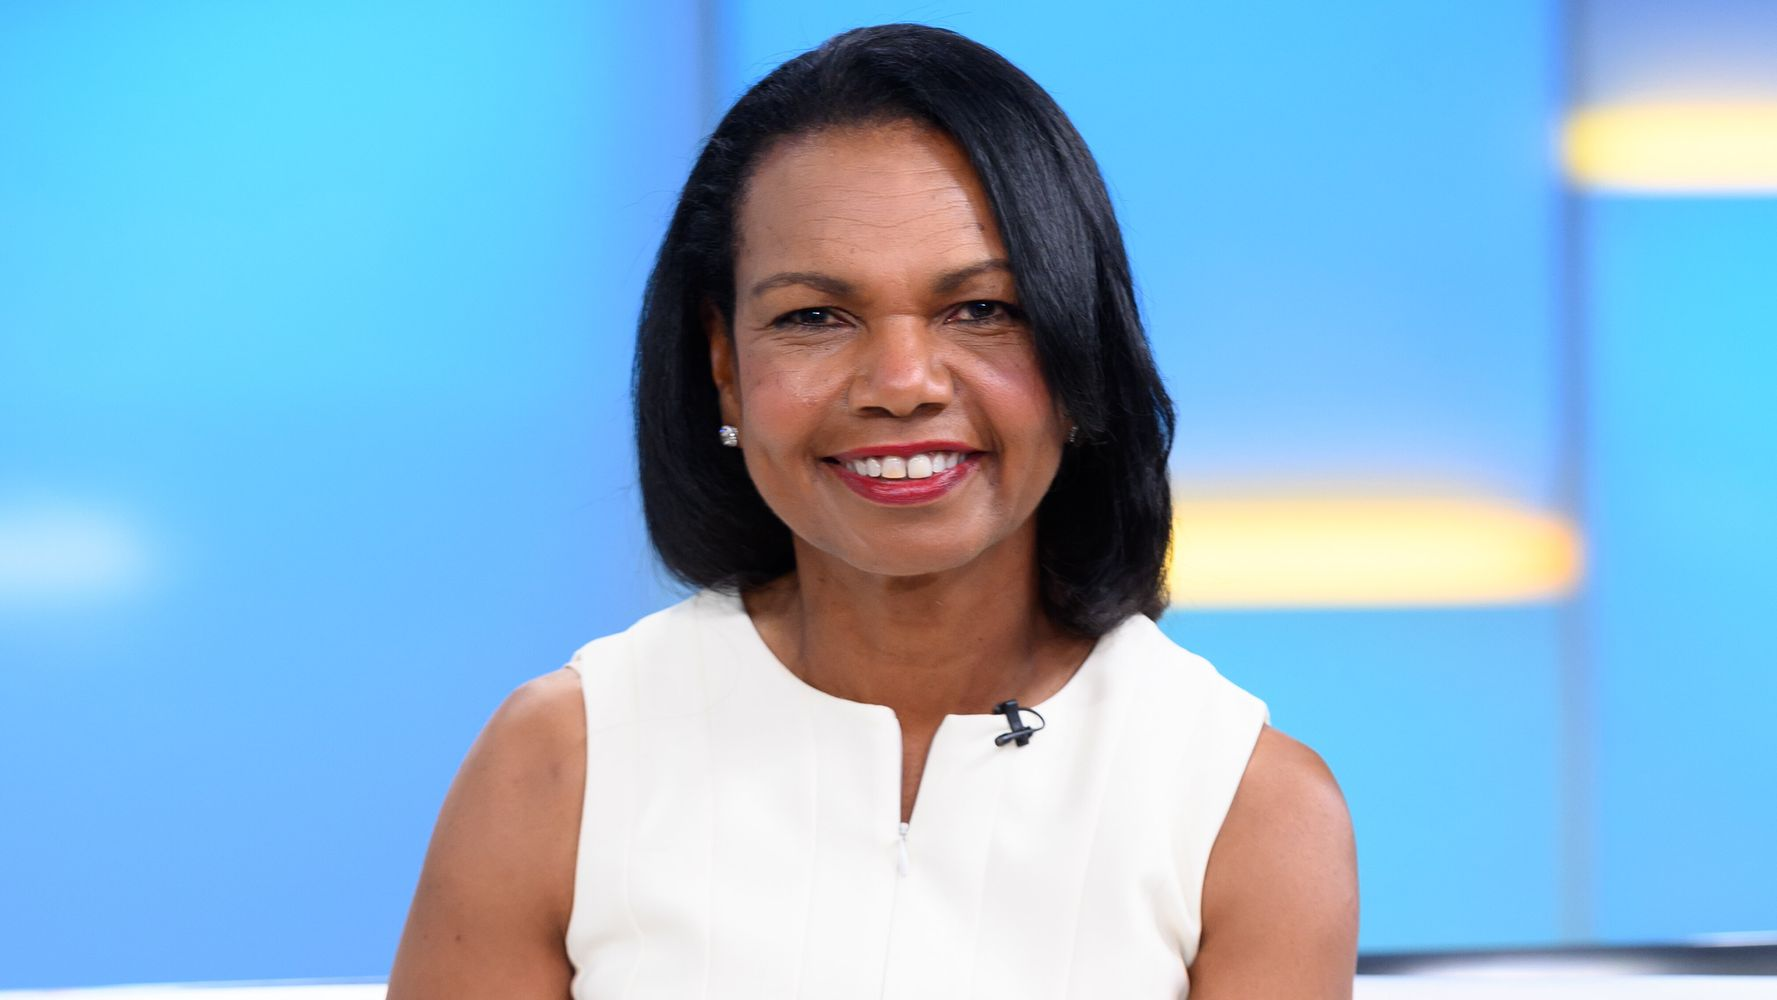 Condoleezza Rice Says Capitol Riot 'Was Wrong' But We Need To 'Move On'